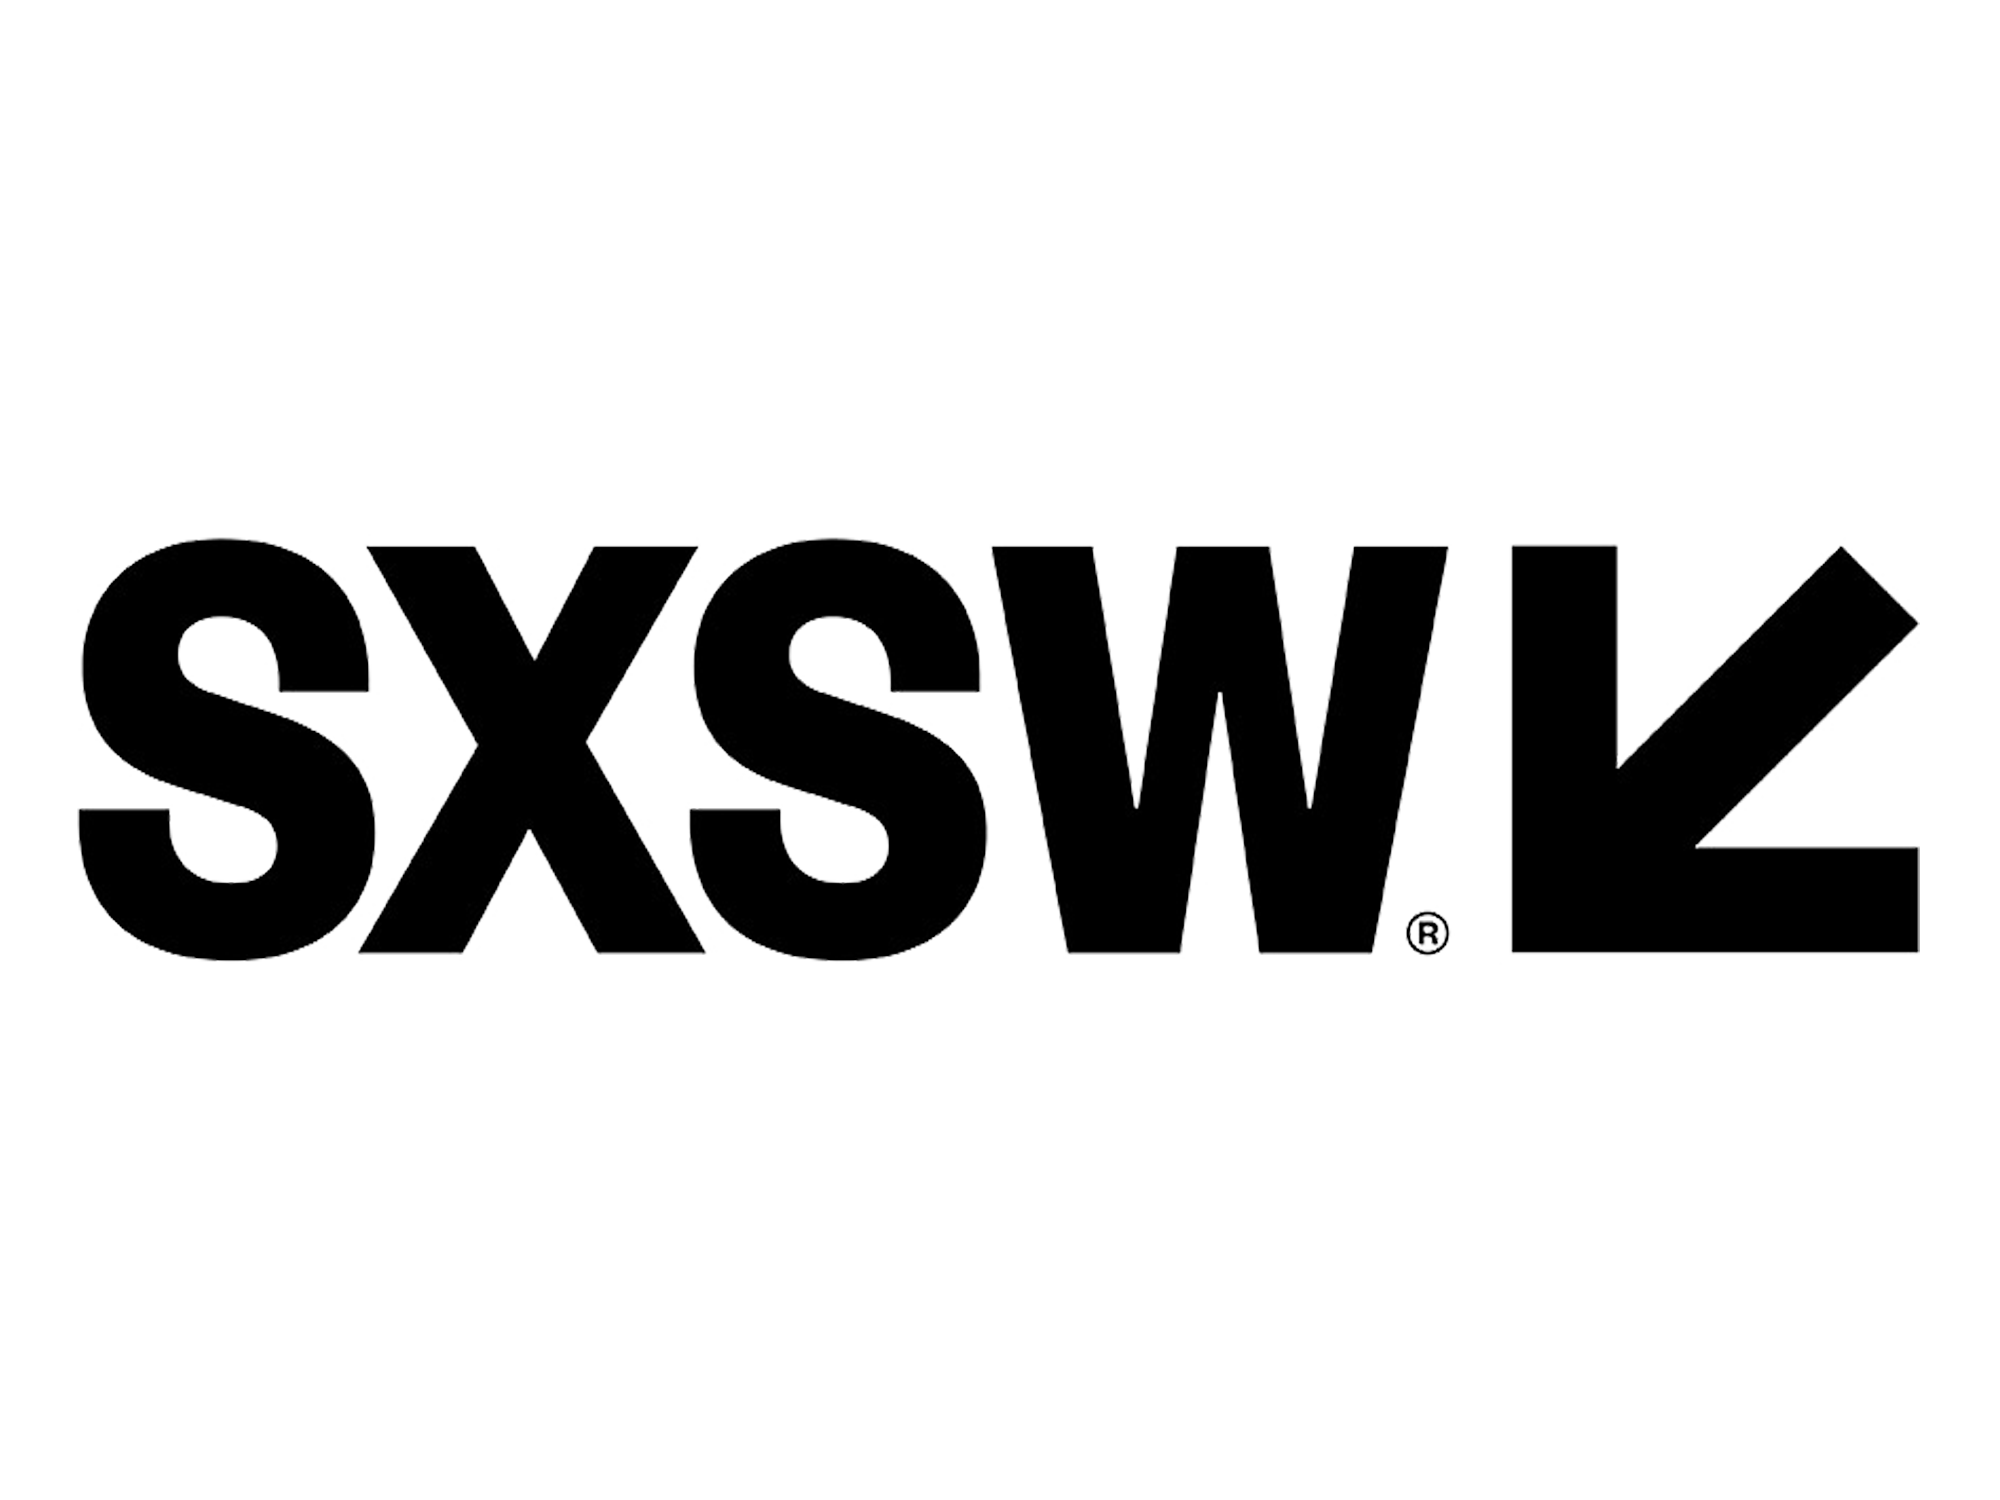 Logo, Speaking Engagement_SXSW_2000w, black_FAV mounted